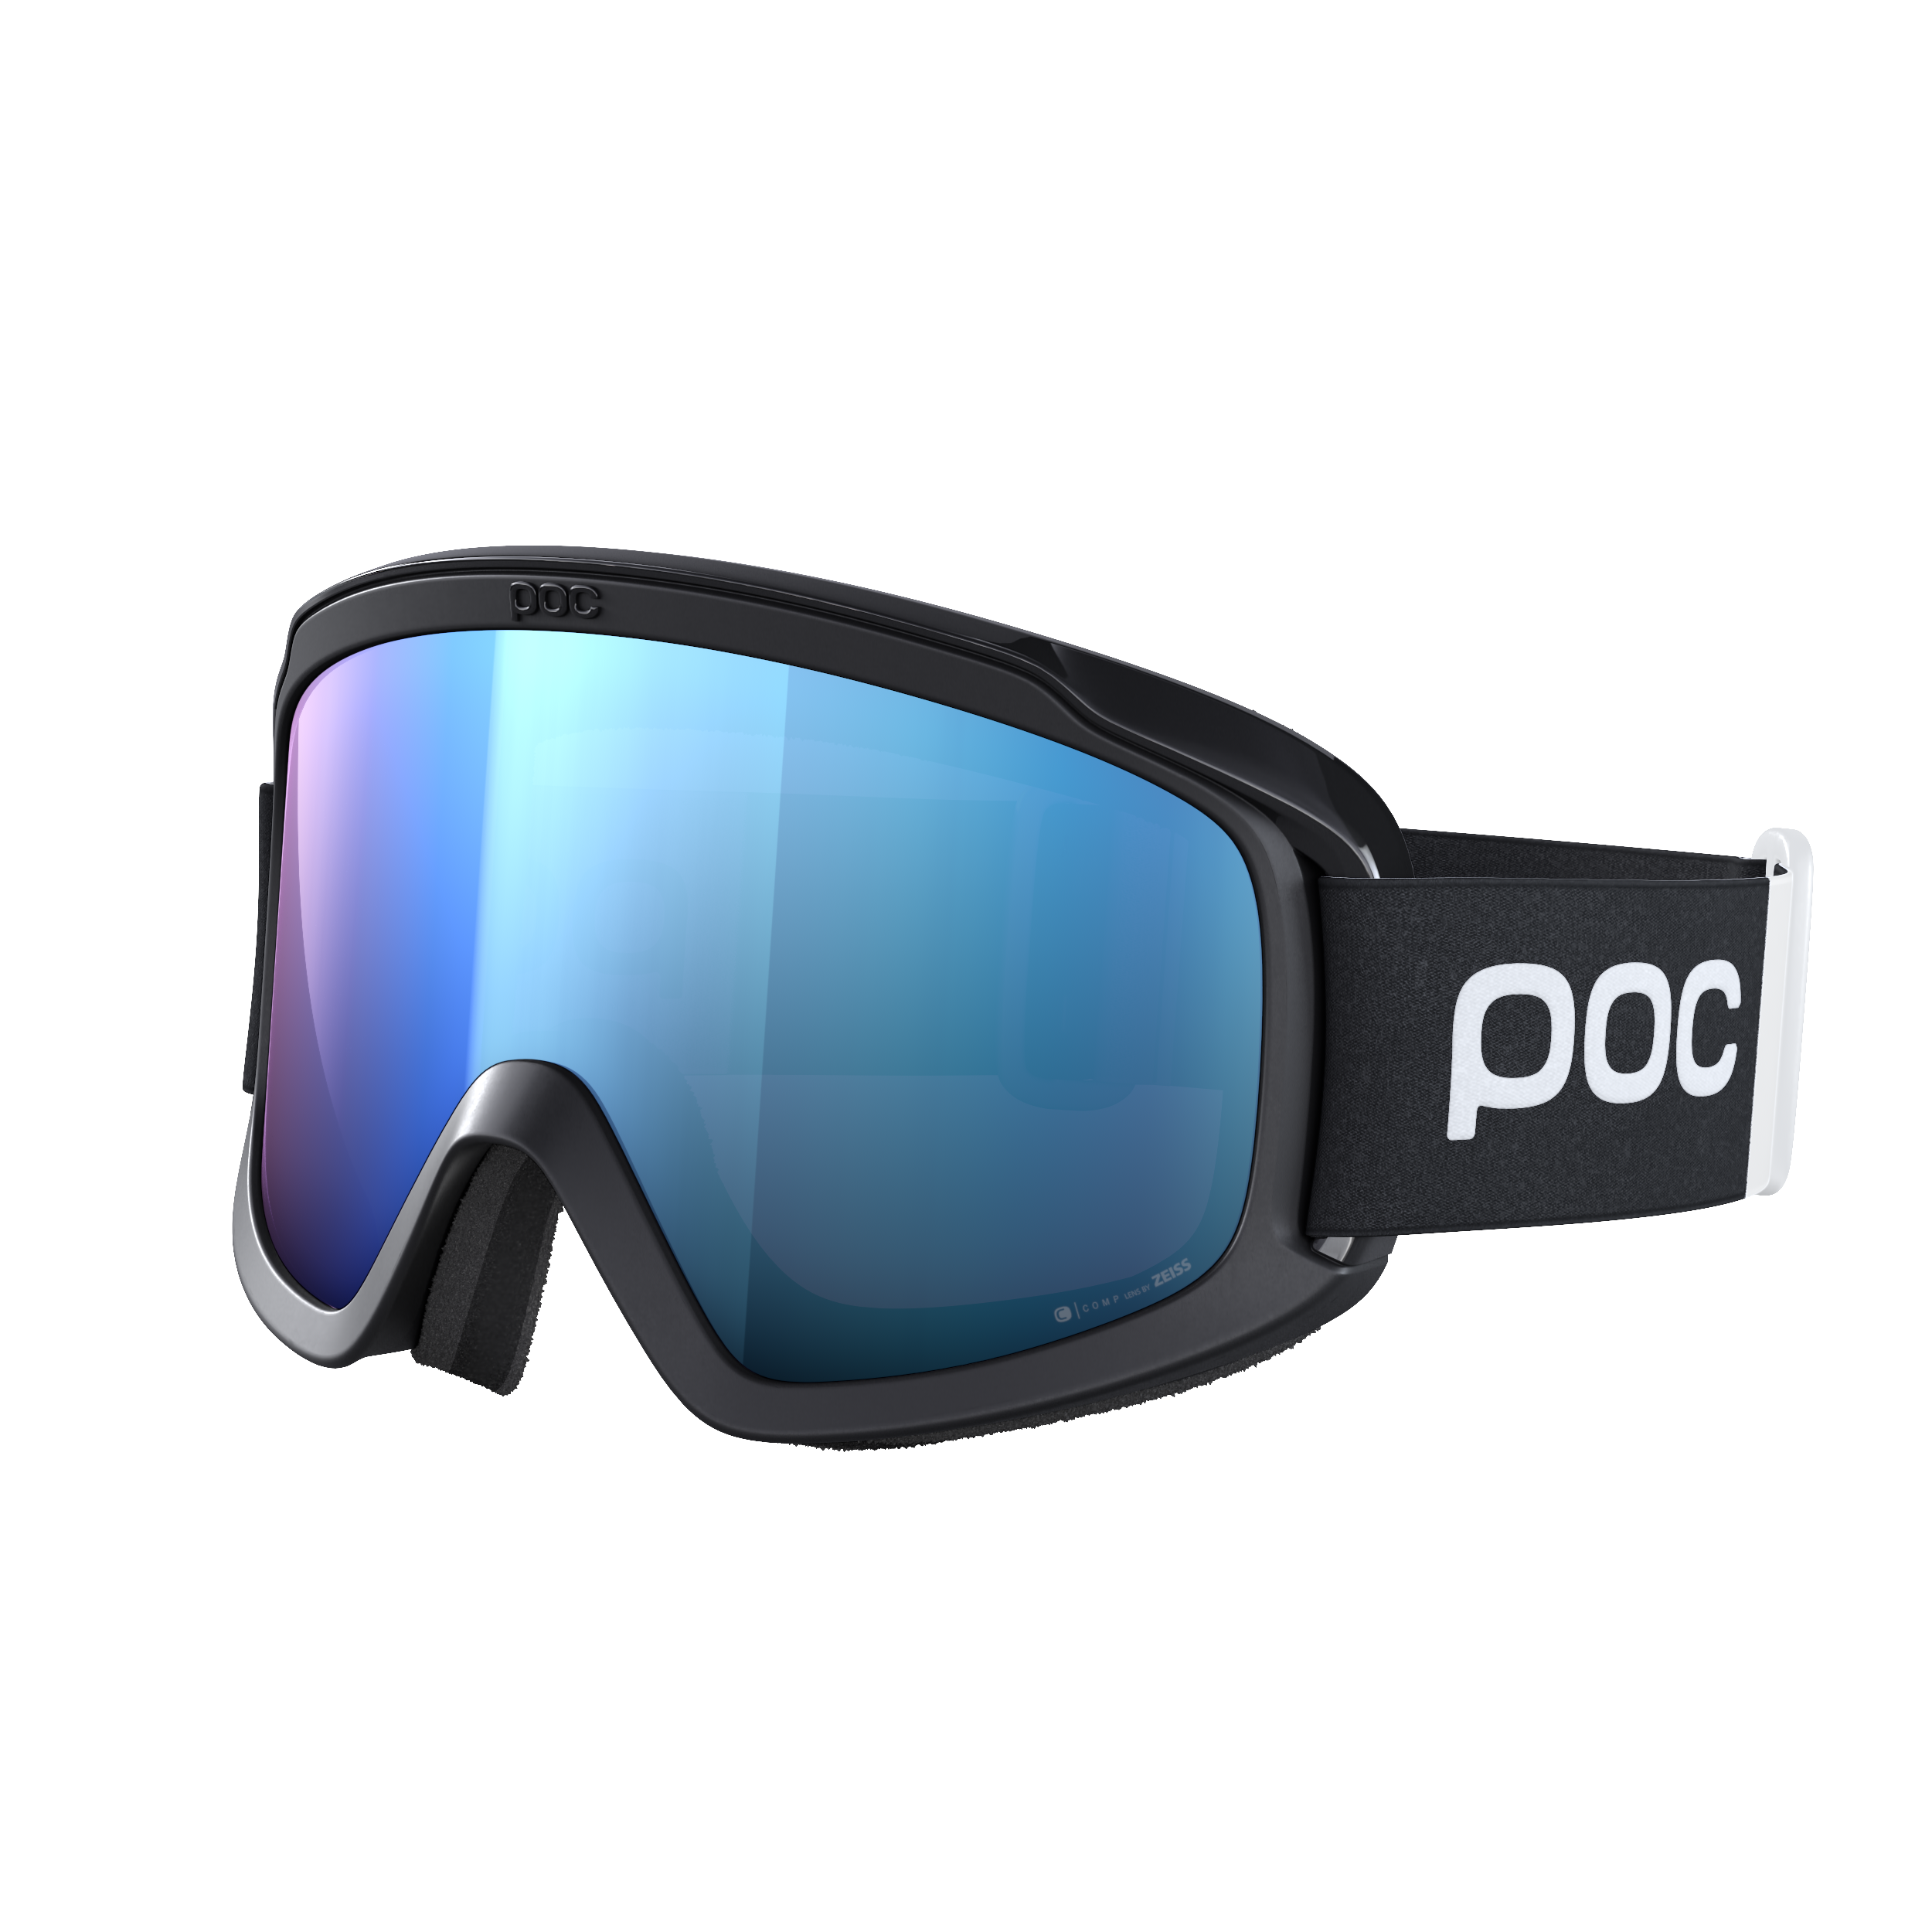 POC Opsin Clarity Comp Goggles